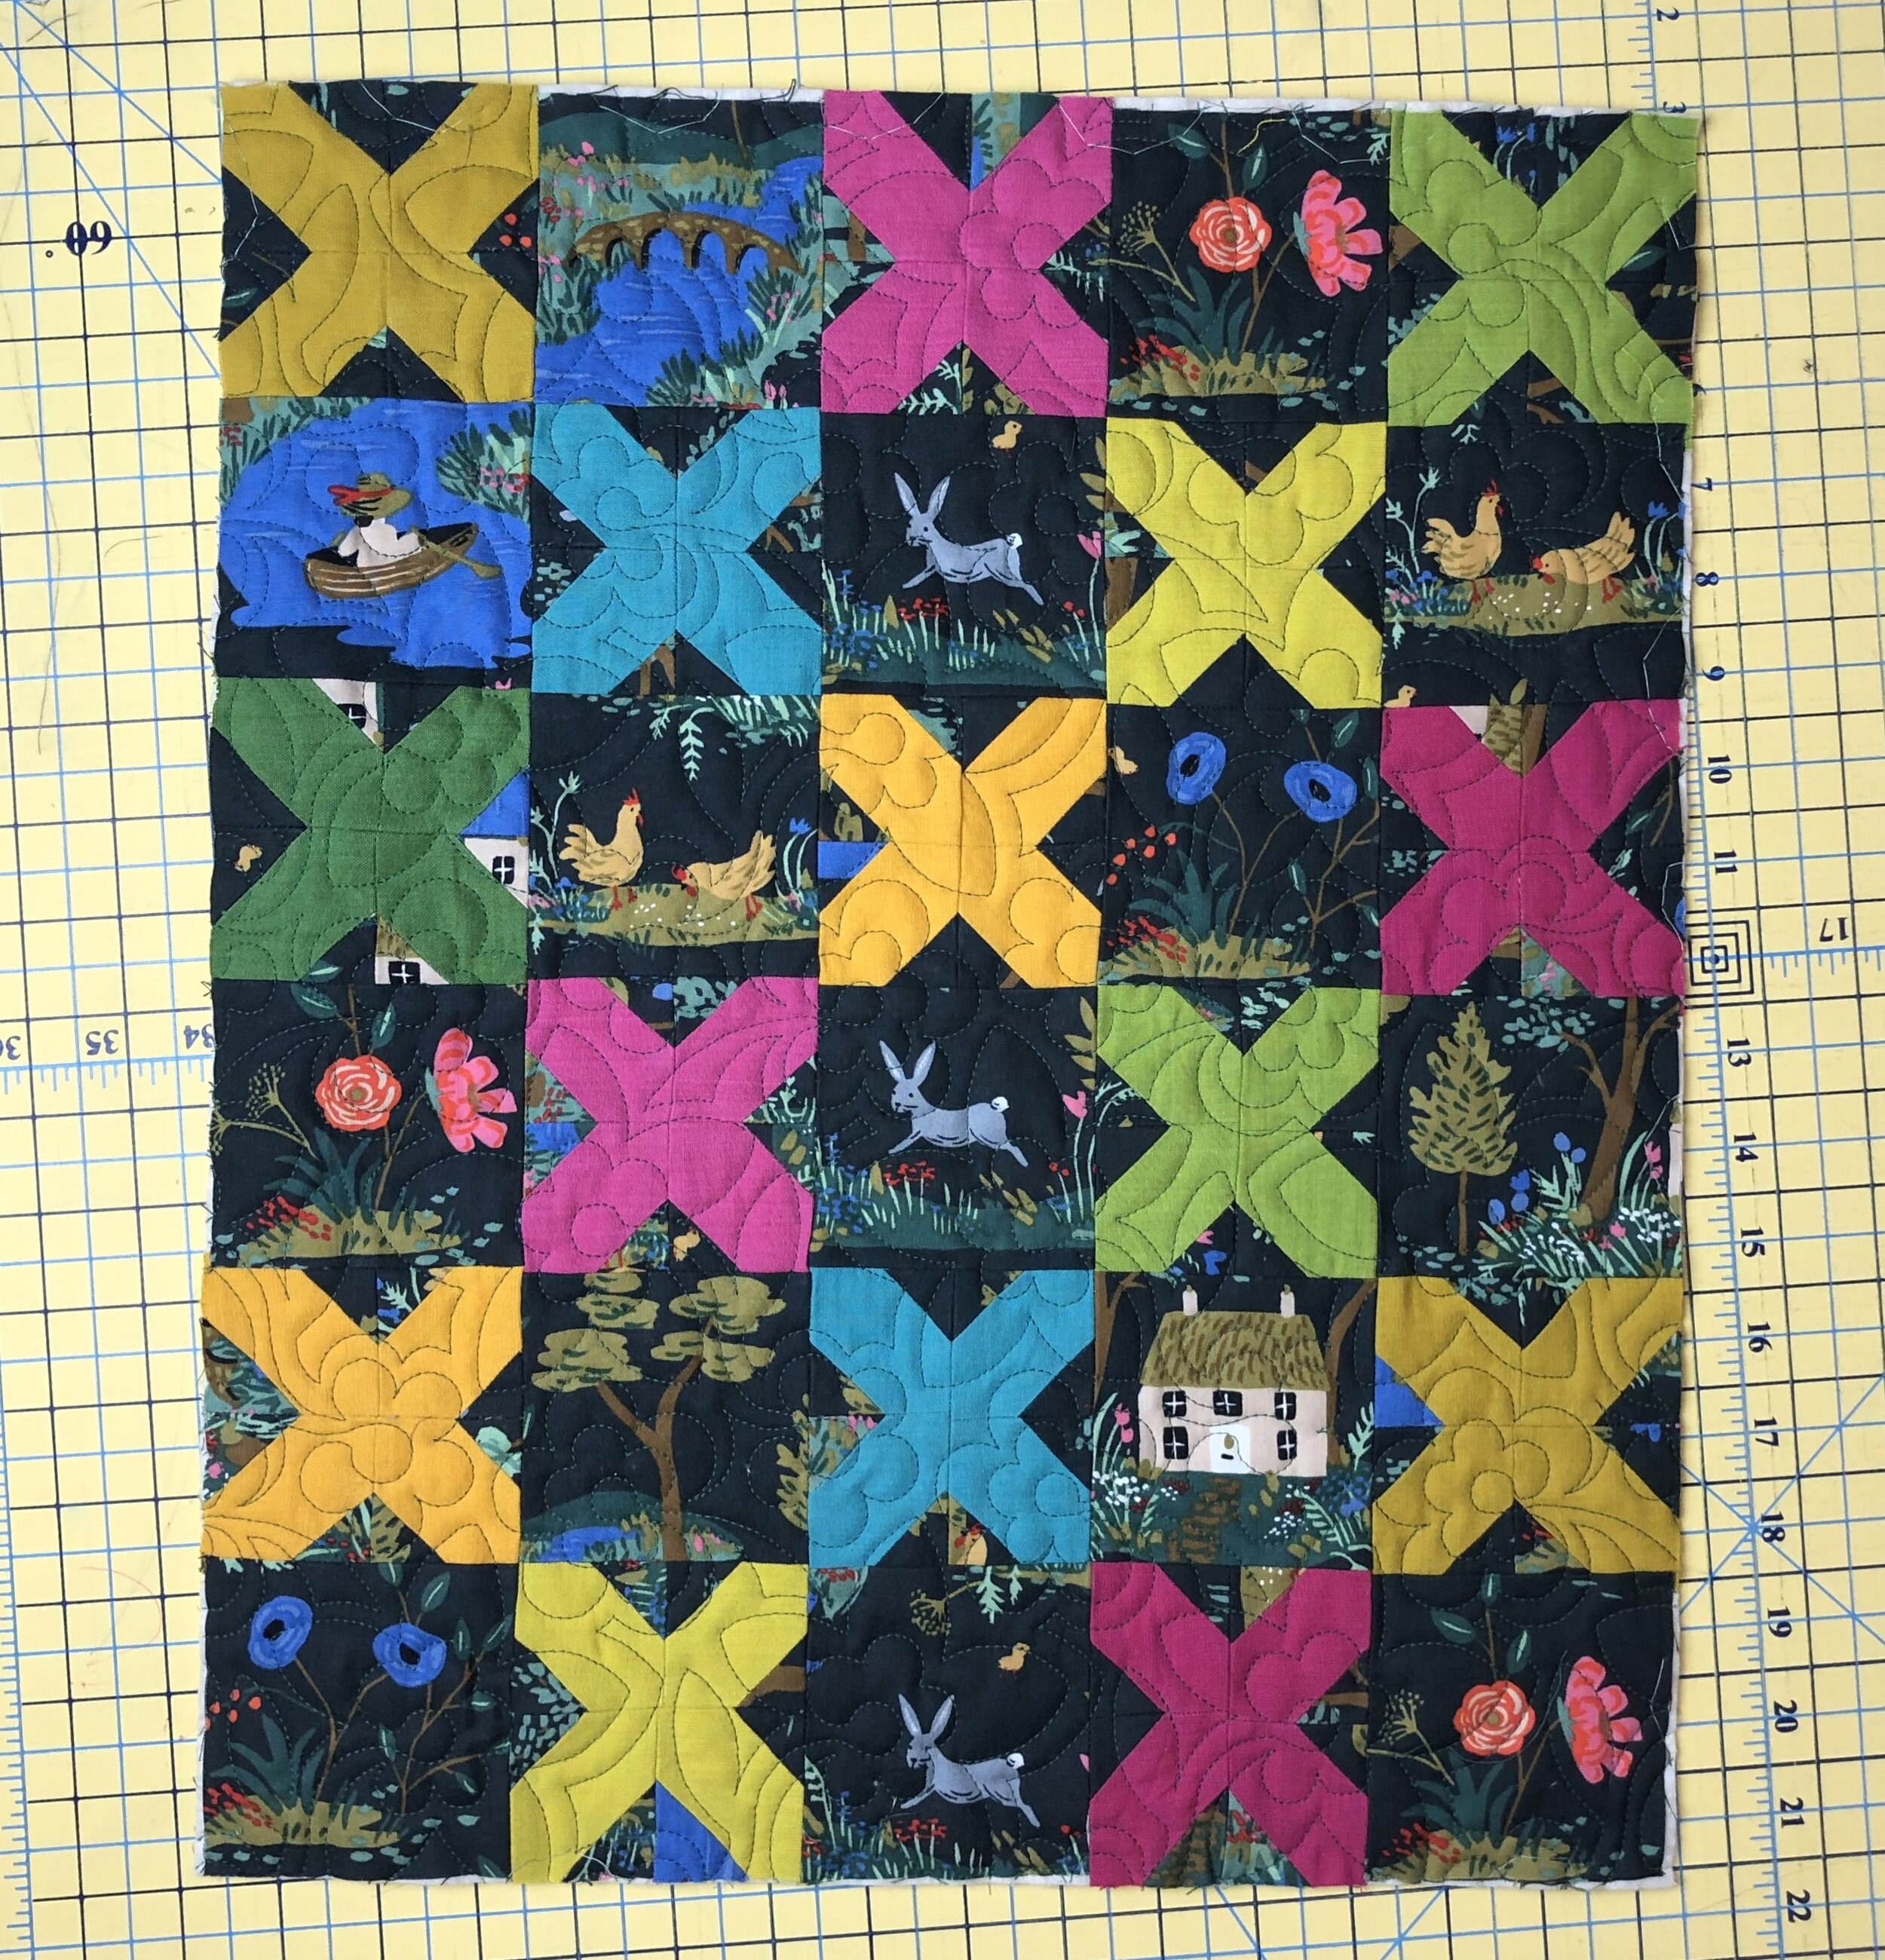 - 1. Make your mini quilt top. Quilt it but don't bind yet